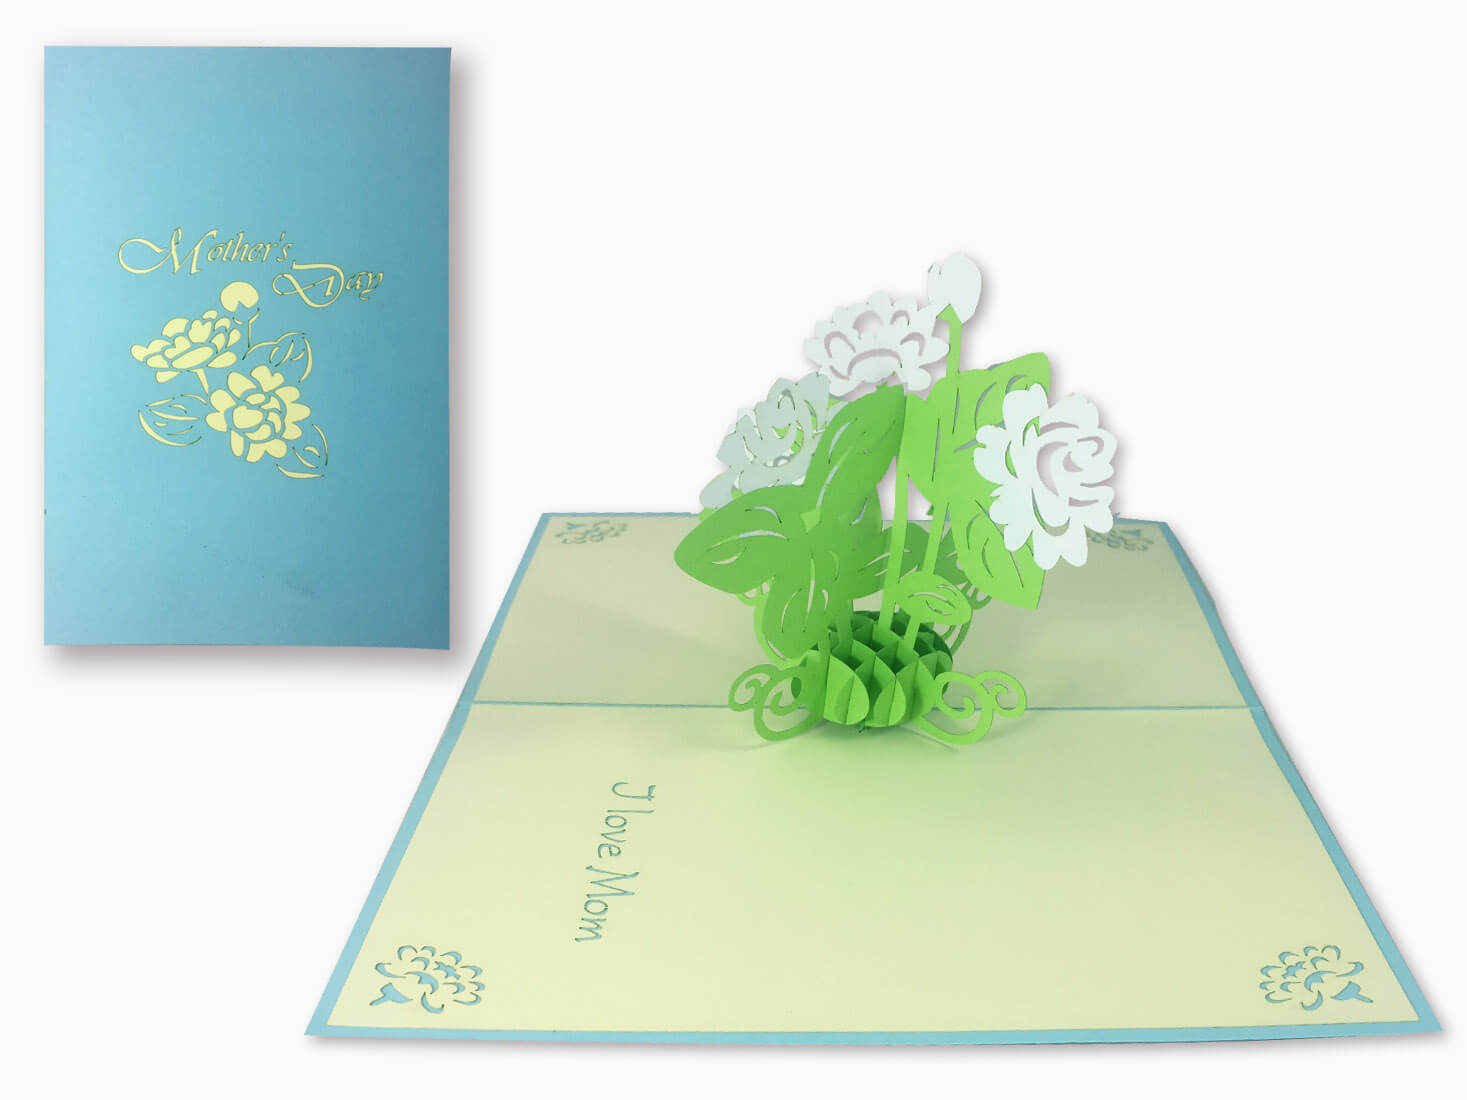 3d pop up greeting card mothers day p110 wisholize 3d pop up greeting card mothers day p110 m4hsunfo